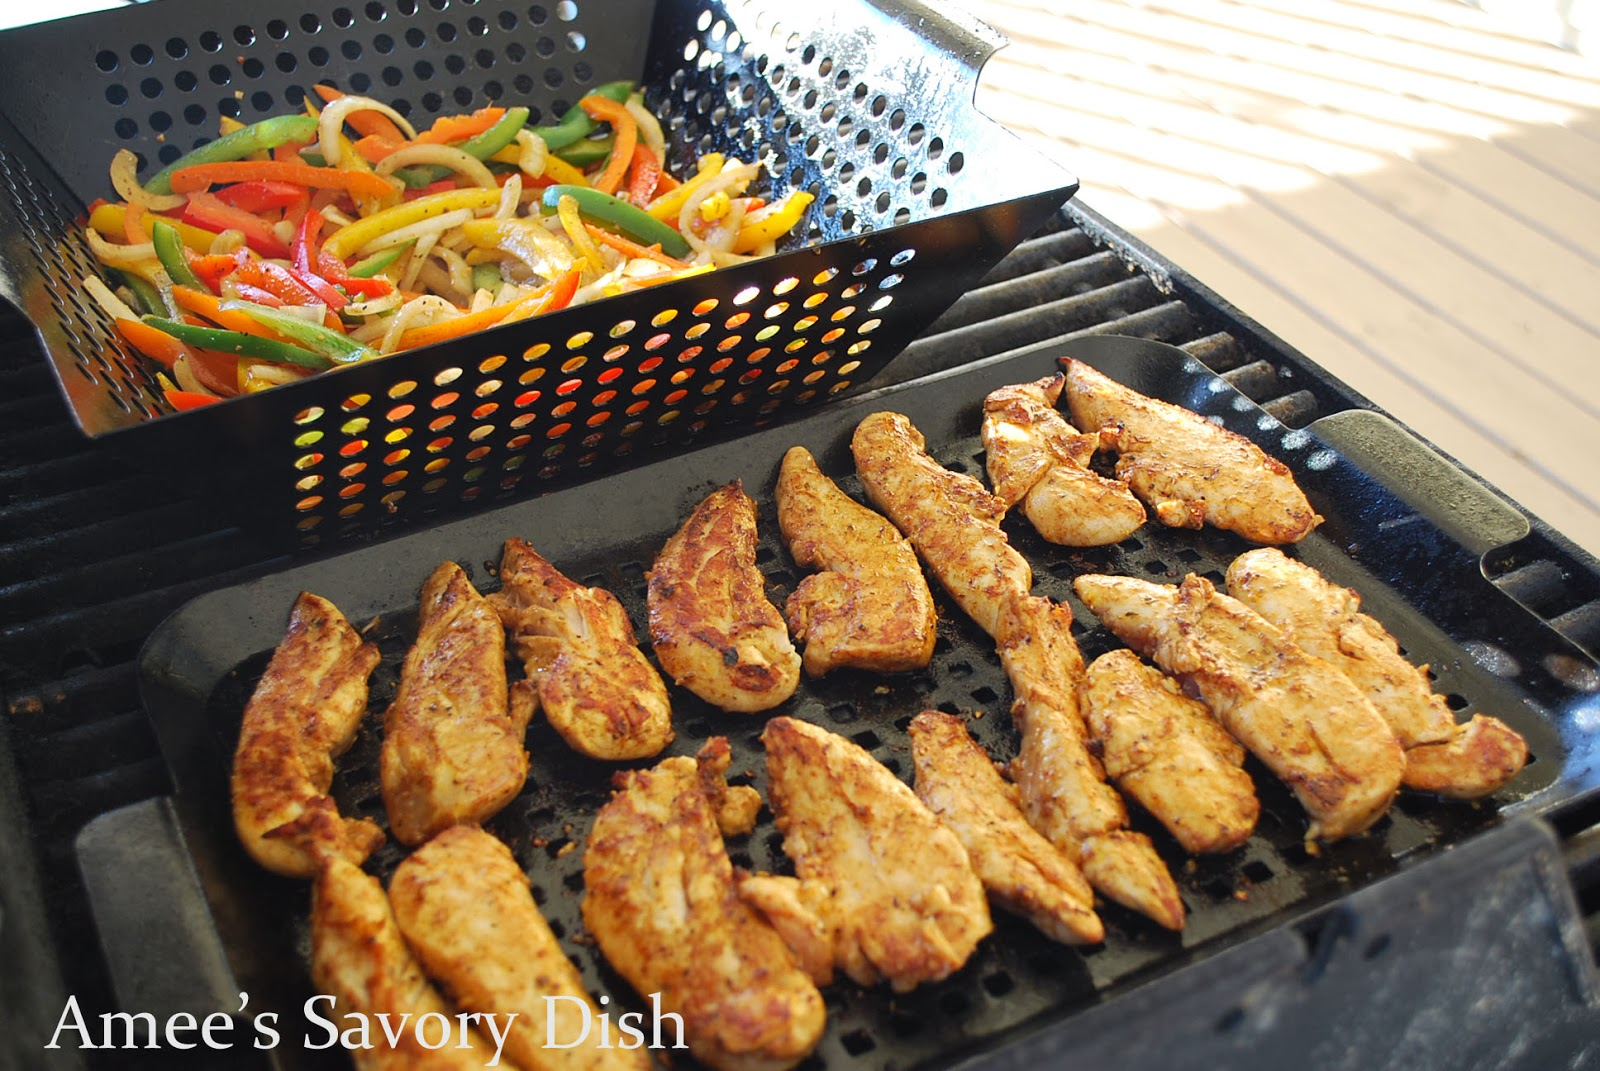 Grilled Chicken Fajitas cooking on a grill